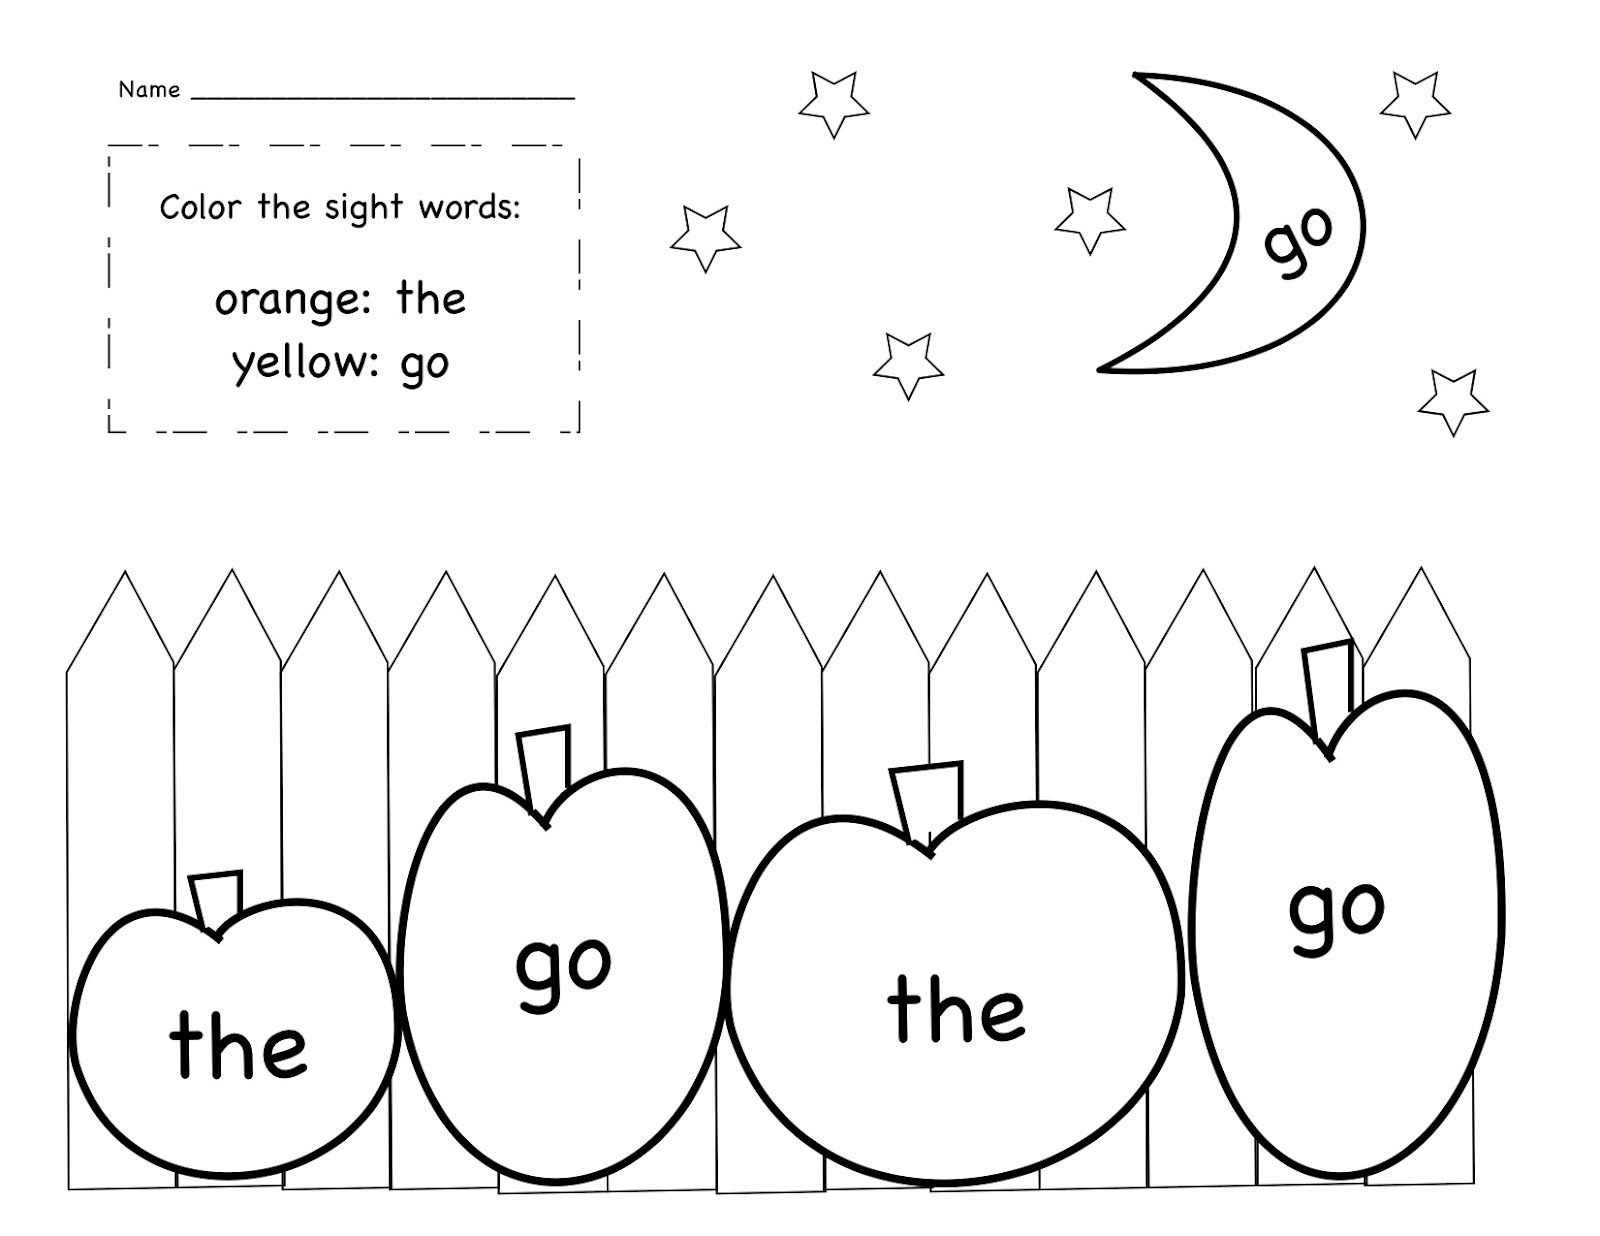 October Sight Word Coloring Sheet Freebie From Kinder Learning Garden Blog